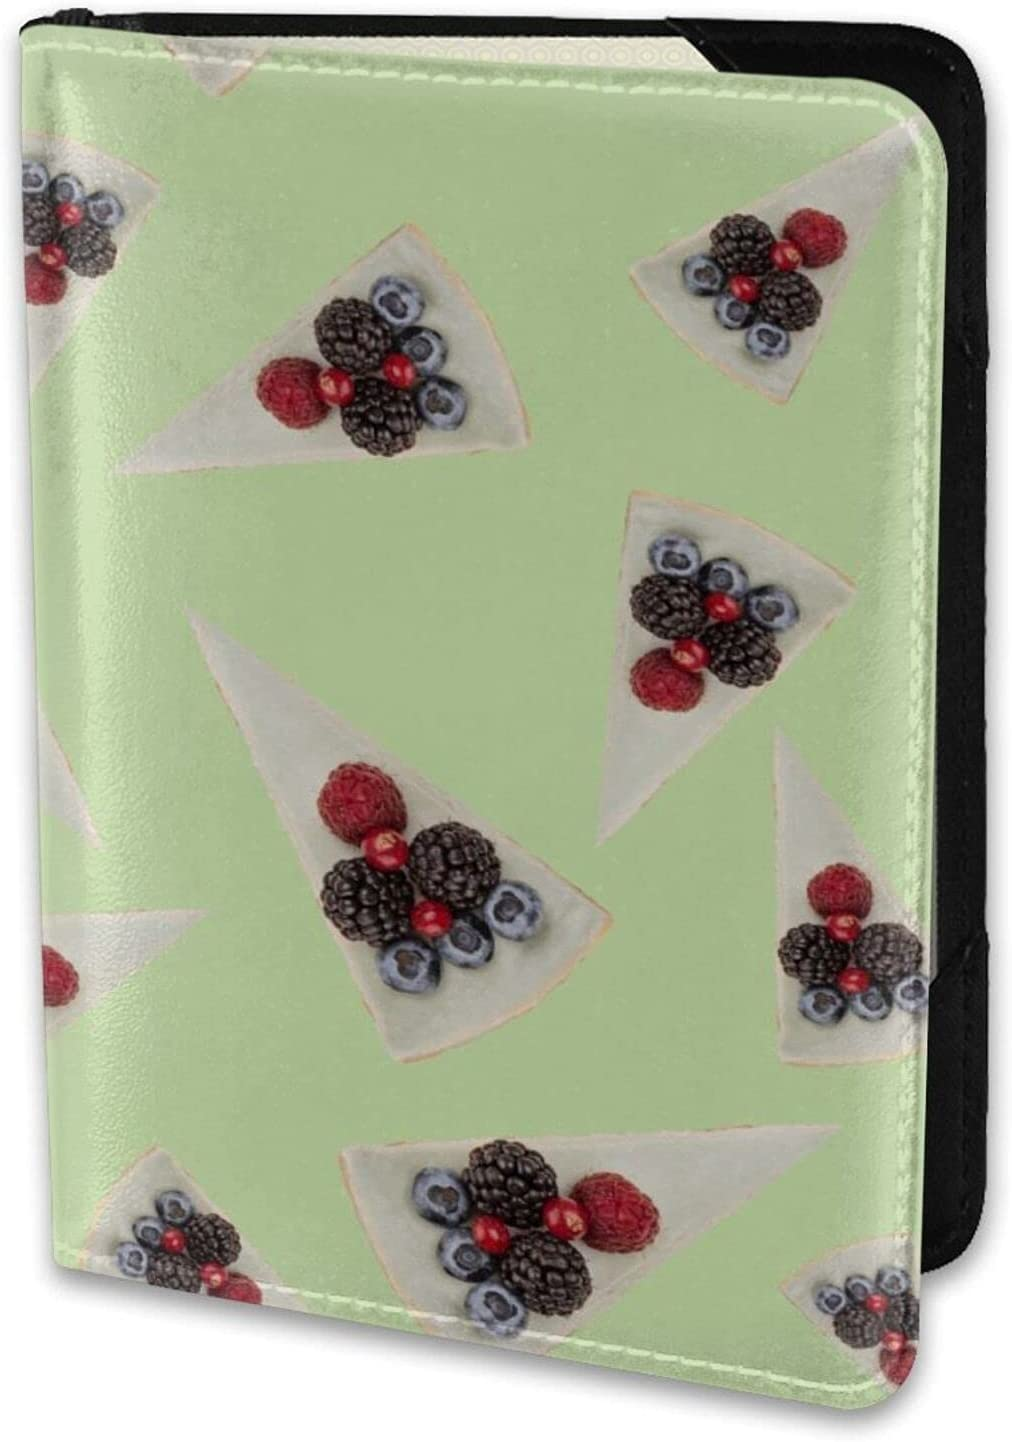 Blue Max 73% OFF Cheesecakes With Berries Mint Lightweight Lea Green Limited time cheap sale Pattern